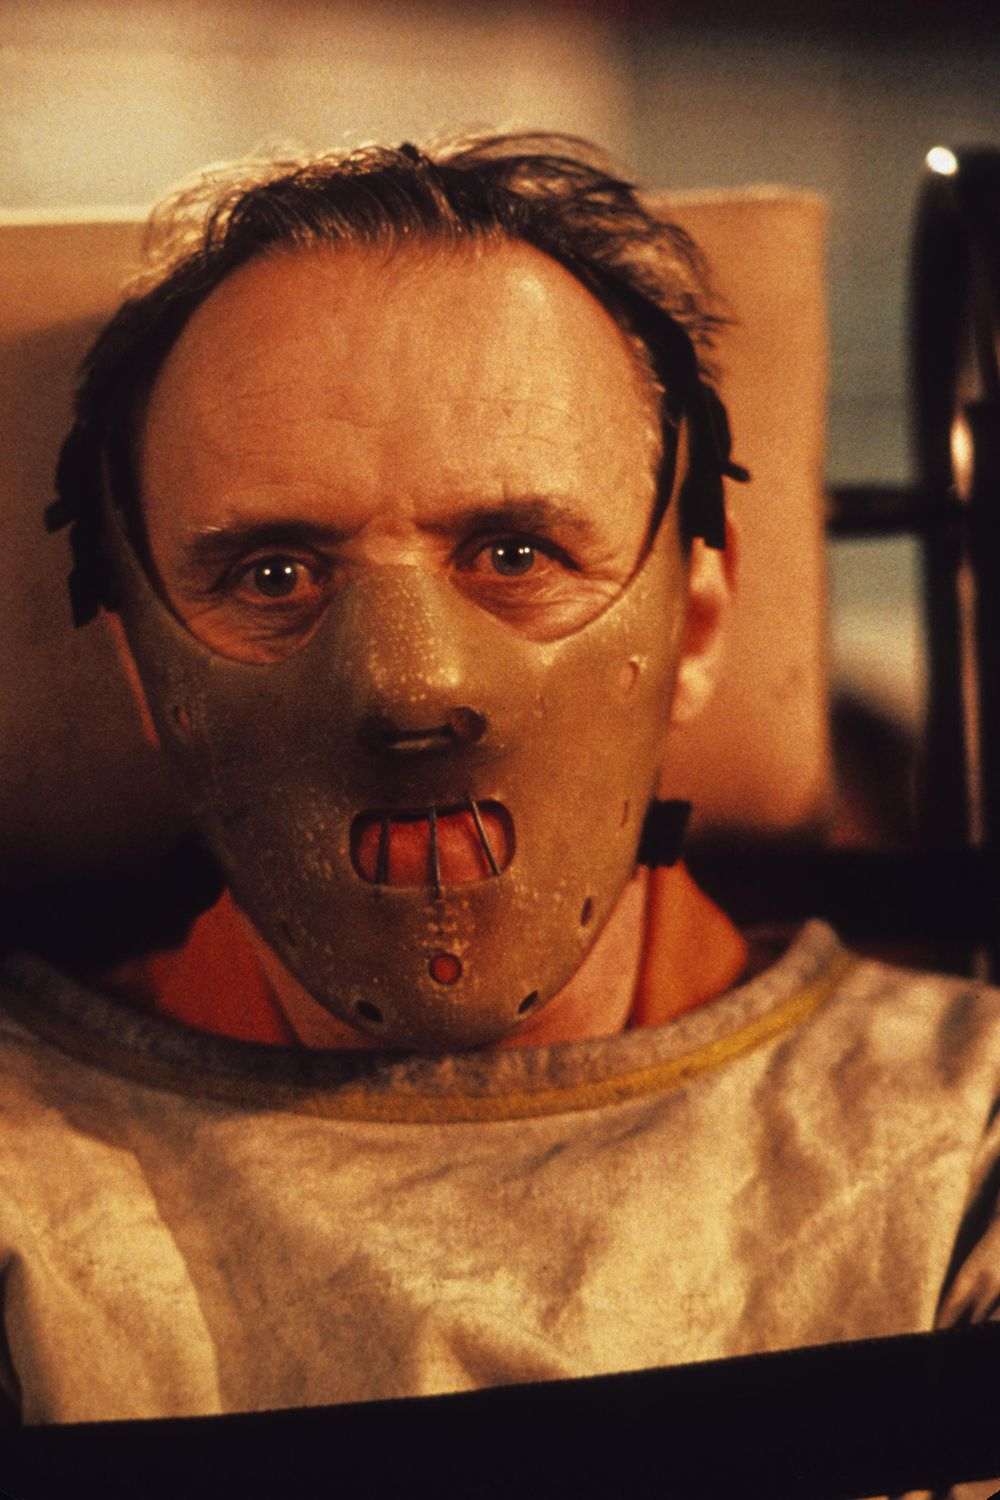 The Silence of the Lambs (1991) Dr. Hannibal Lecter (Anthony Hopkins) is an imprisoned psychiatrist, cannibal, and serial killer, whose insight and advice FBI trainee Clarice Starling (Jodie Foster) seeks for a new case. The psychological thriller is creepy AF, to say the least, but the movie is GOOD.